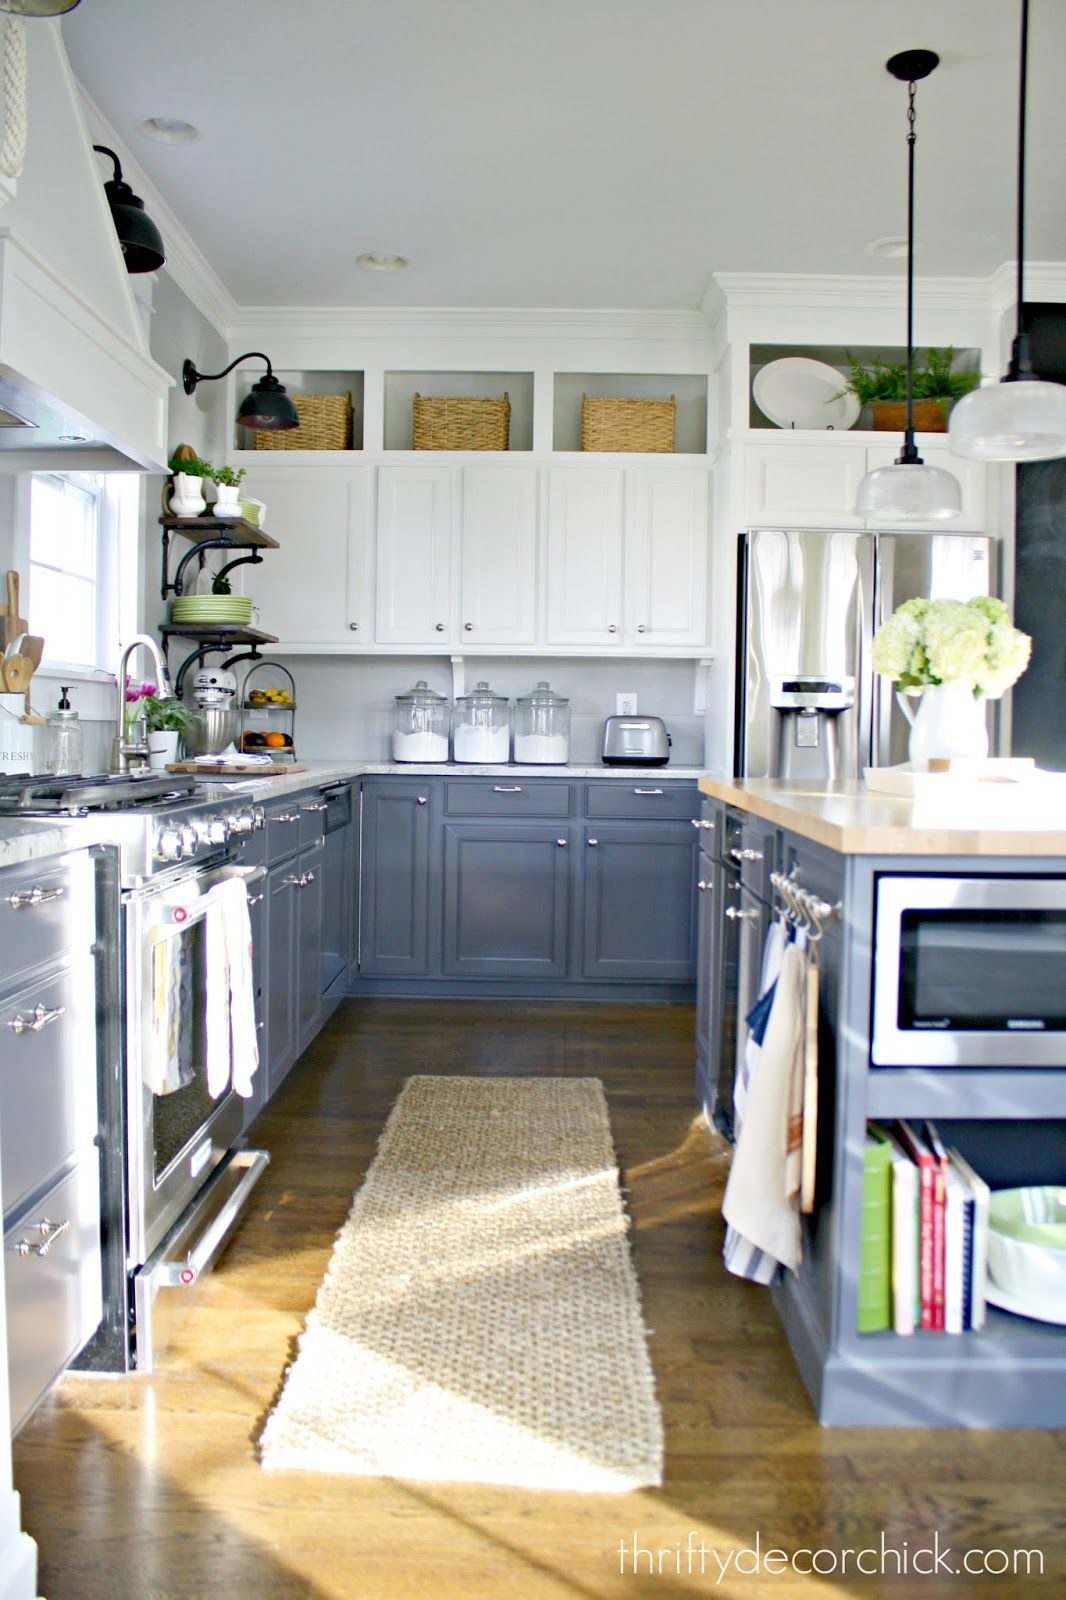 Cabinets With Blue Kitchen Makeover Ideas on bar makeover ideas, kitchen renovation ideas on a budget, single wall kitchen makeover ideas, easy kitchen makeover ideas, vintage cabinet ideas, kitchen backsplash ideas, l-shaped kitchen makeover ideas, bench makeover ideas, kitchen makeovers with painted cabinets, kitchen paint makeovers, closet makeover ideas, kitchen bathroom ideas, bedroom makeover ideas, brown kitchen cabinets ideas, kitchen design, kitchen island makeover ideas, 70s kitchen makeover ideas, kitchen spring decorating ideas, kitchen makeovers with white cabinets, swimming pool makeover ideas,